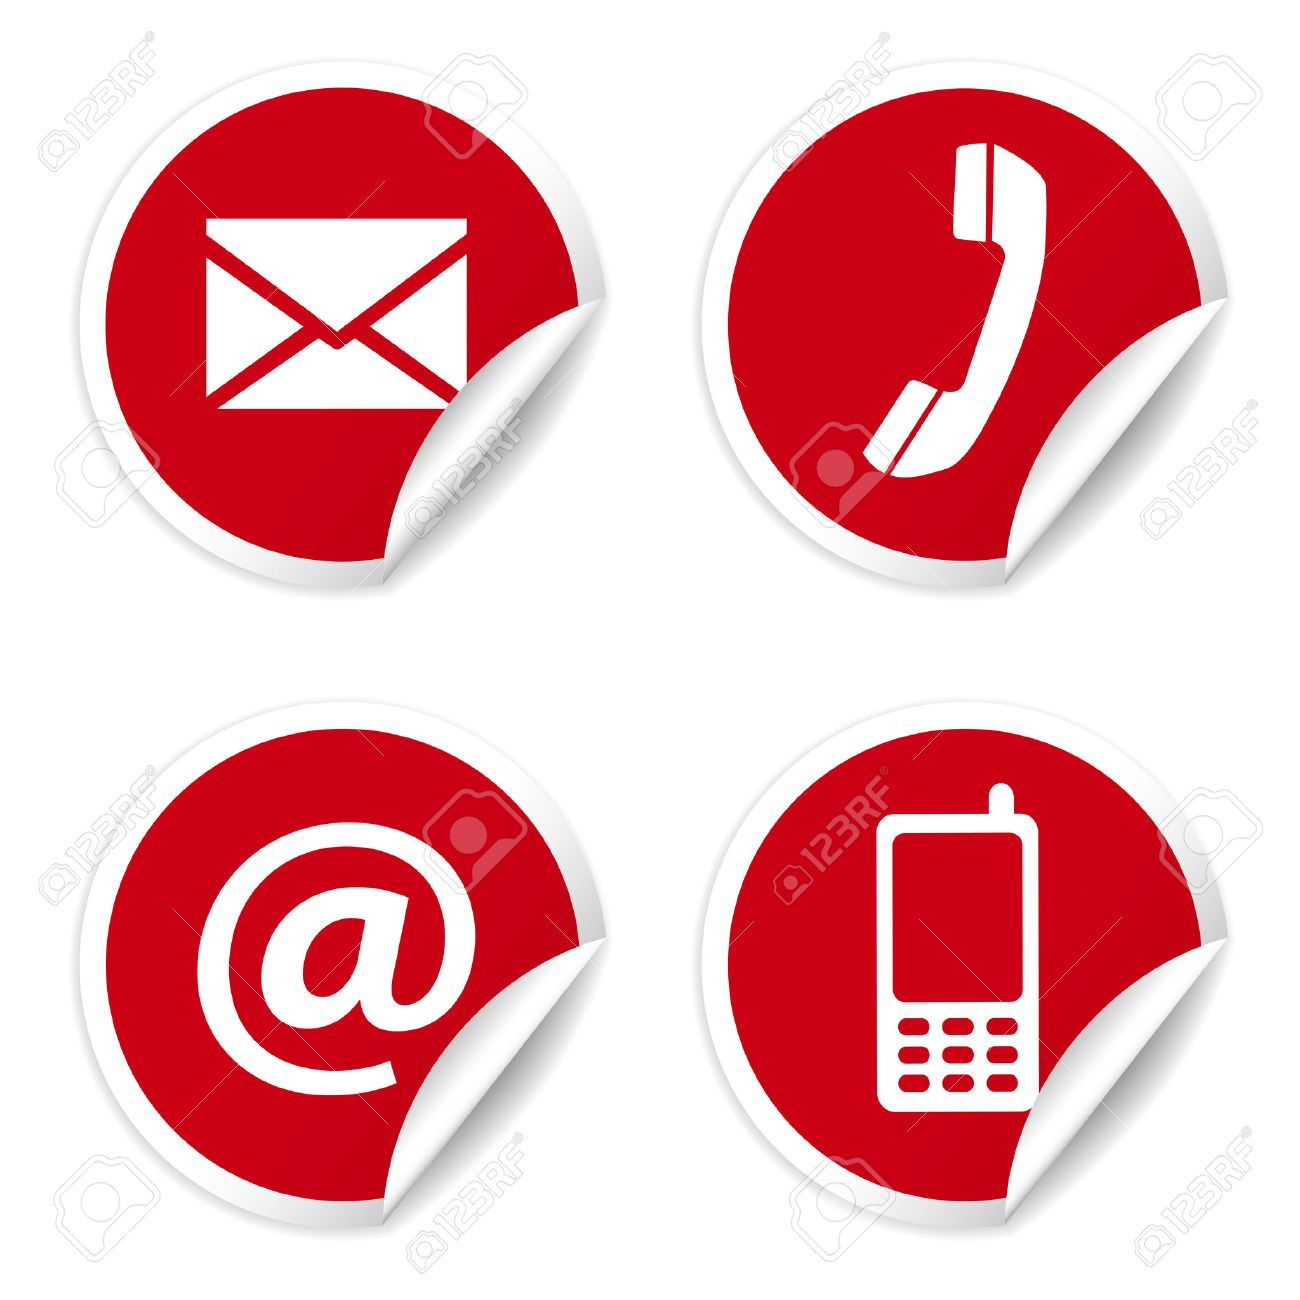 Vector web and internet contact us icons set and design symbols on red circular stickers with curl